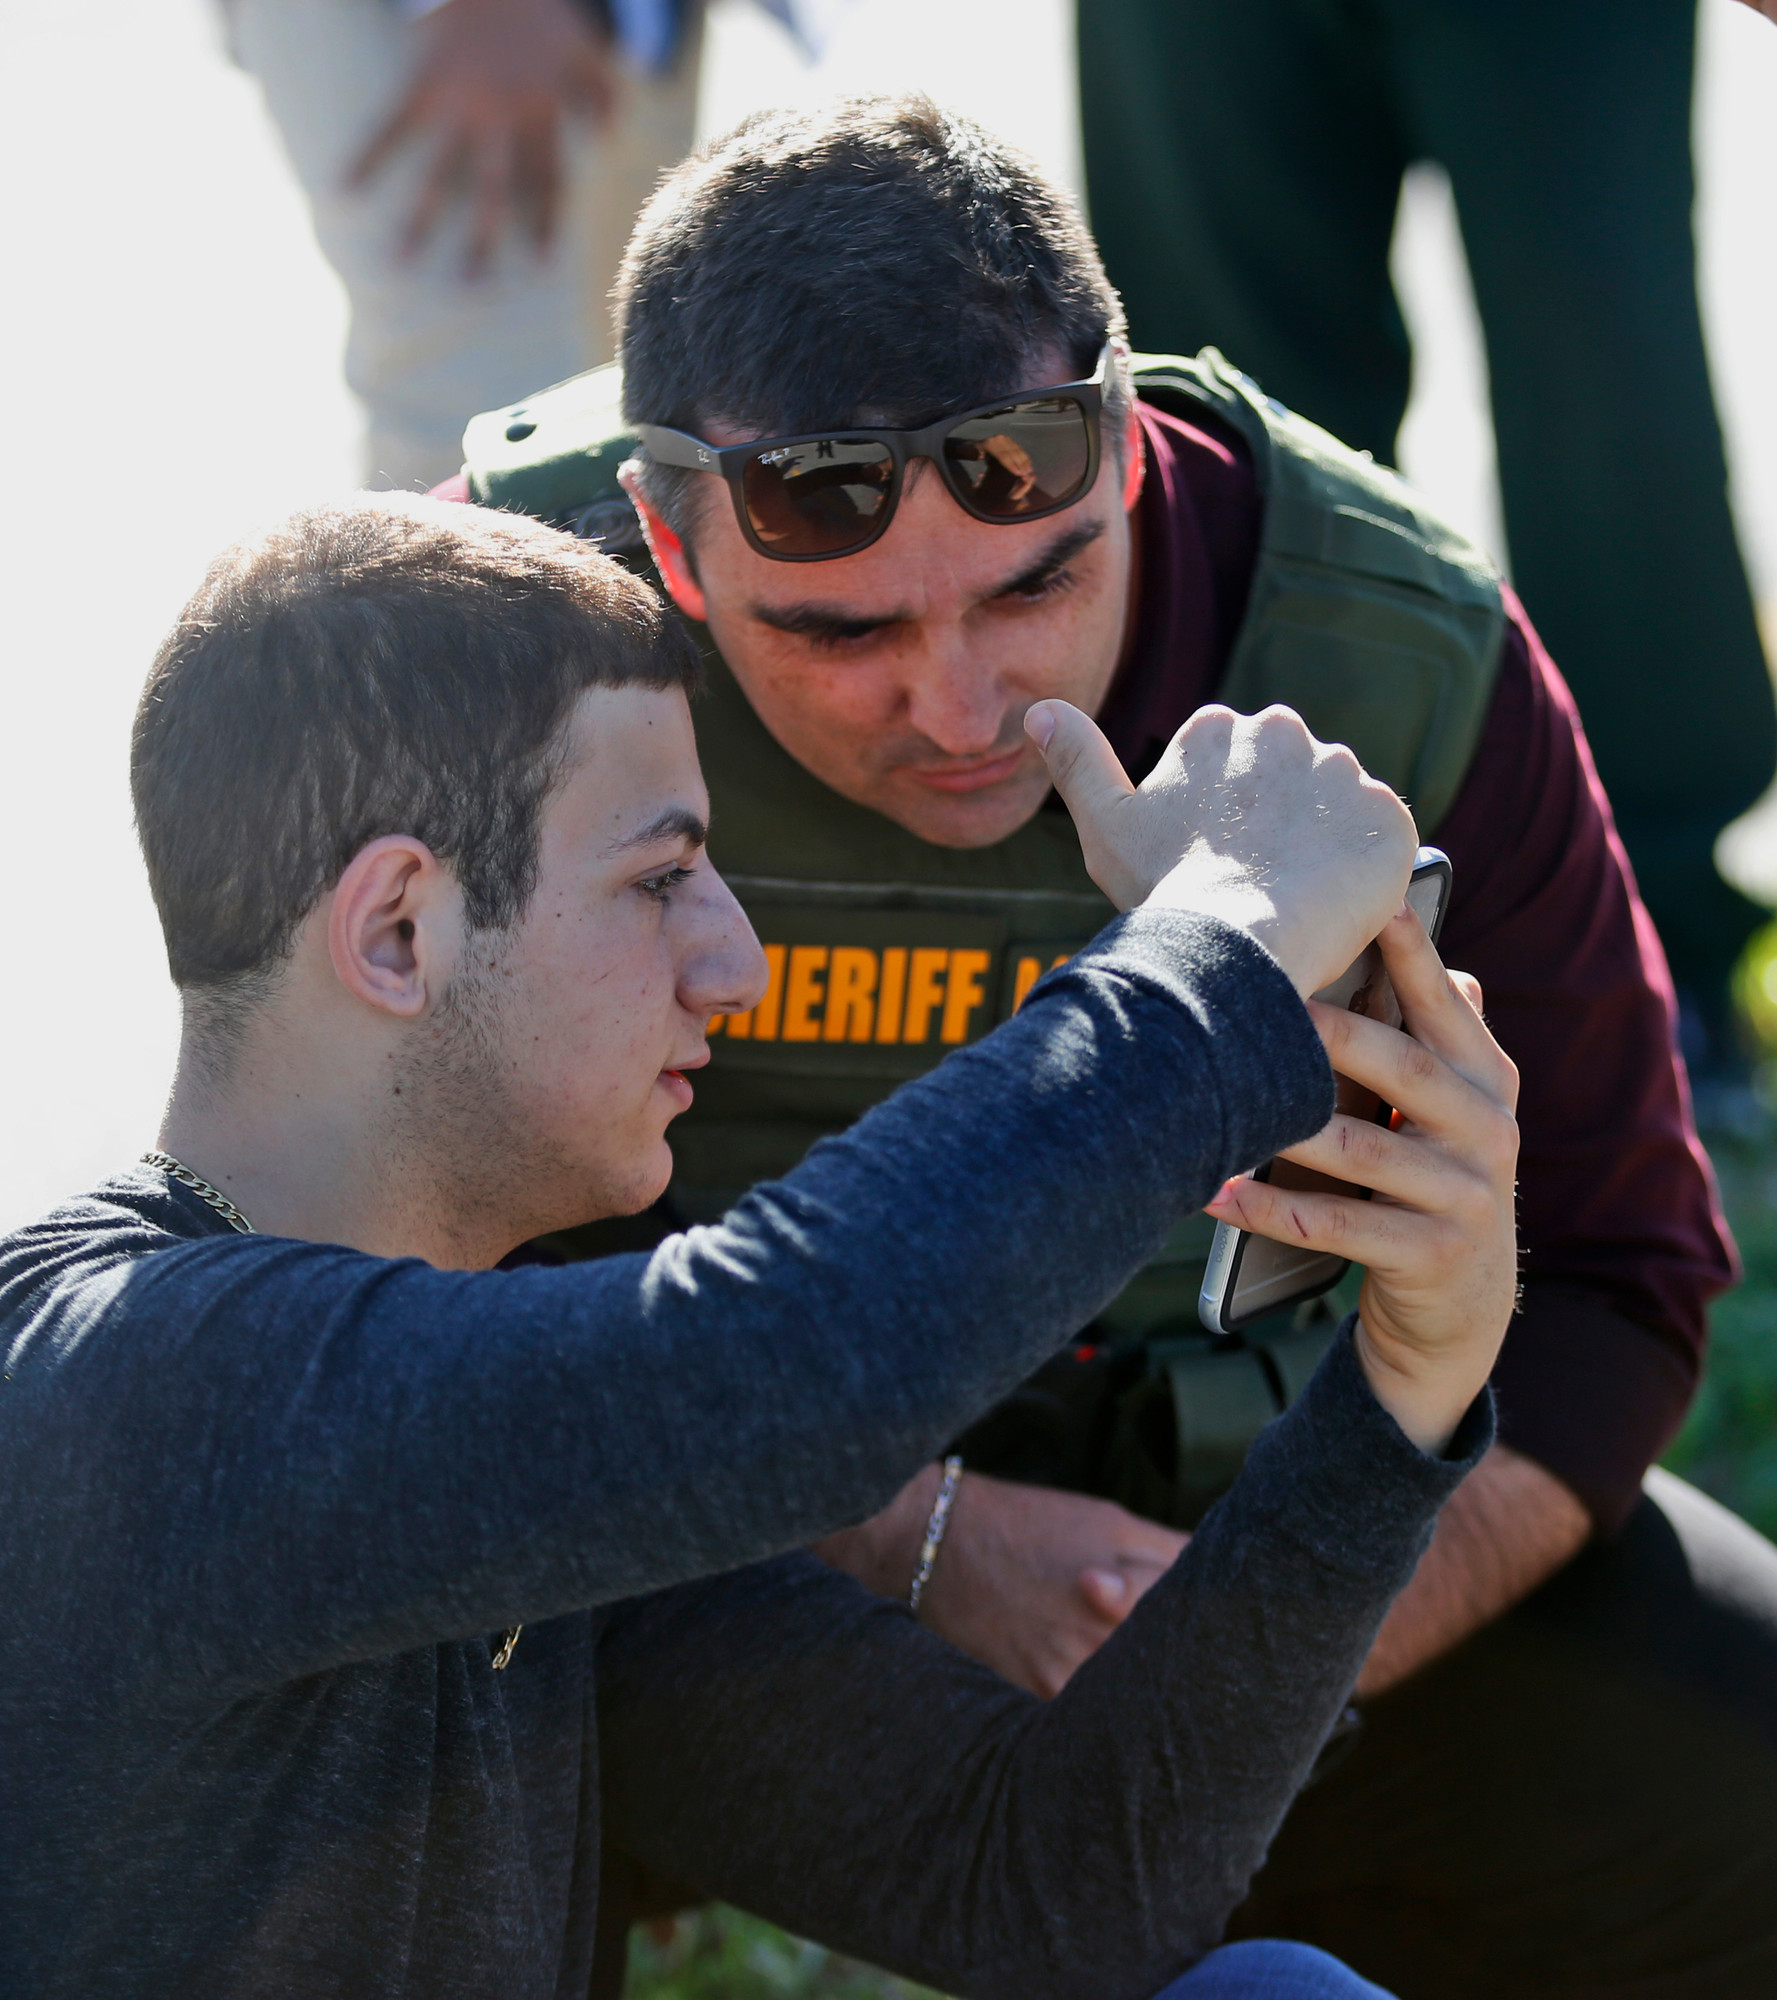 A Marjory Stoneman Douglas High School student shows a law enforcement officer a video from his phone in Parkland, Florida. Modern technology has enabled real-time reaction, support and calls for action during deadly mass shootings in the U.S.